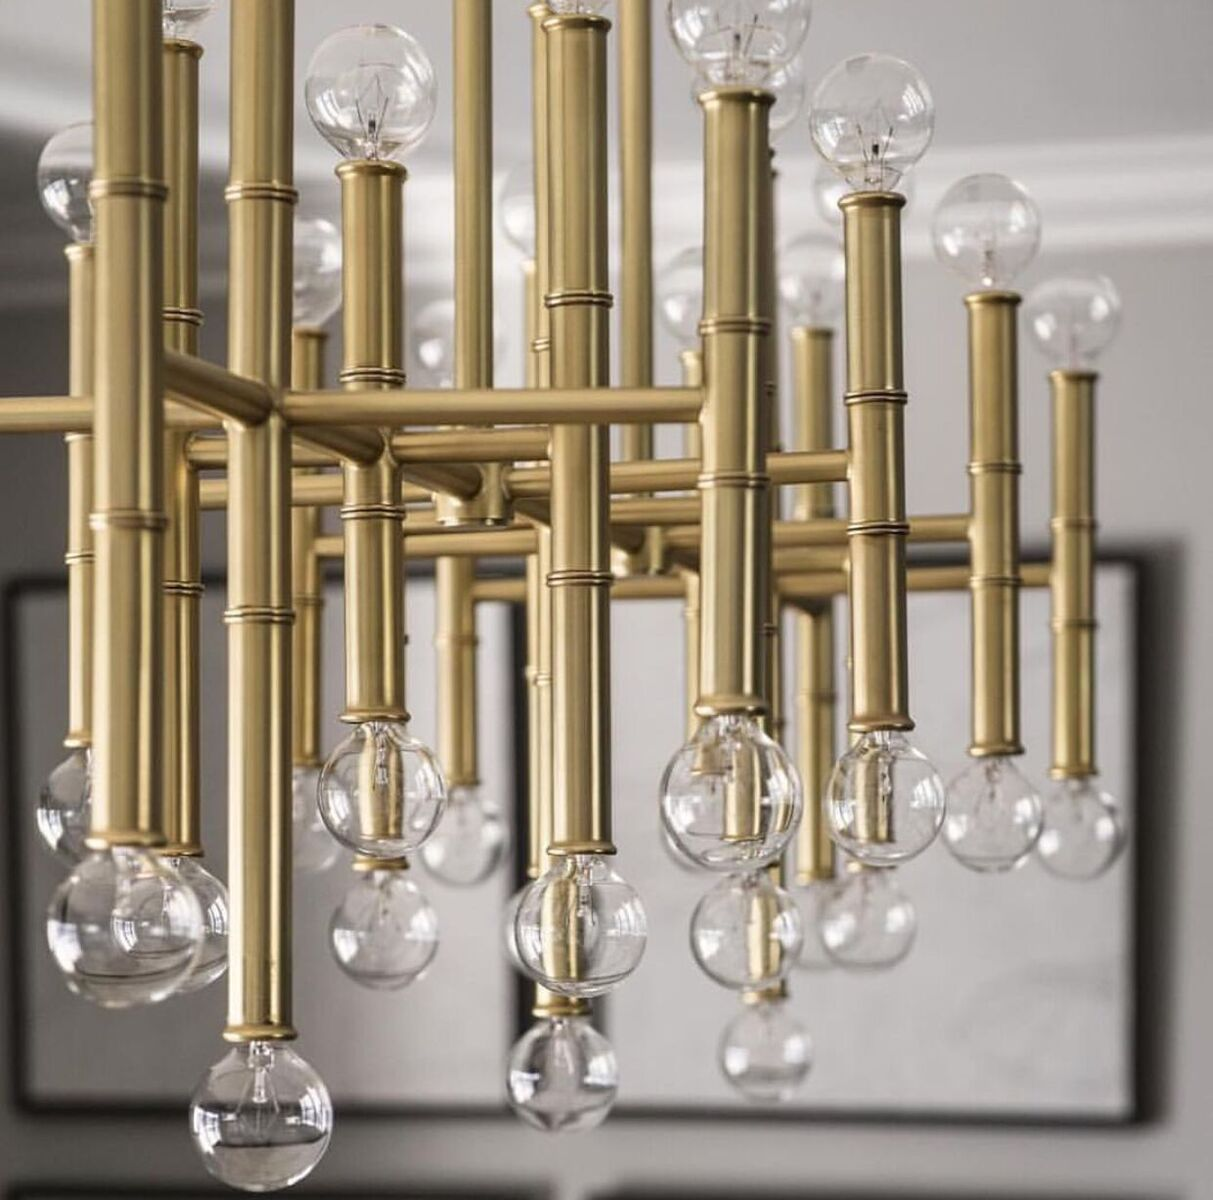 robert abbey meurice brass chandelier in room